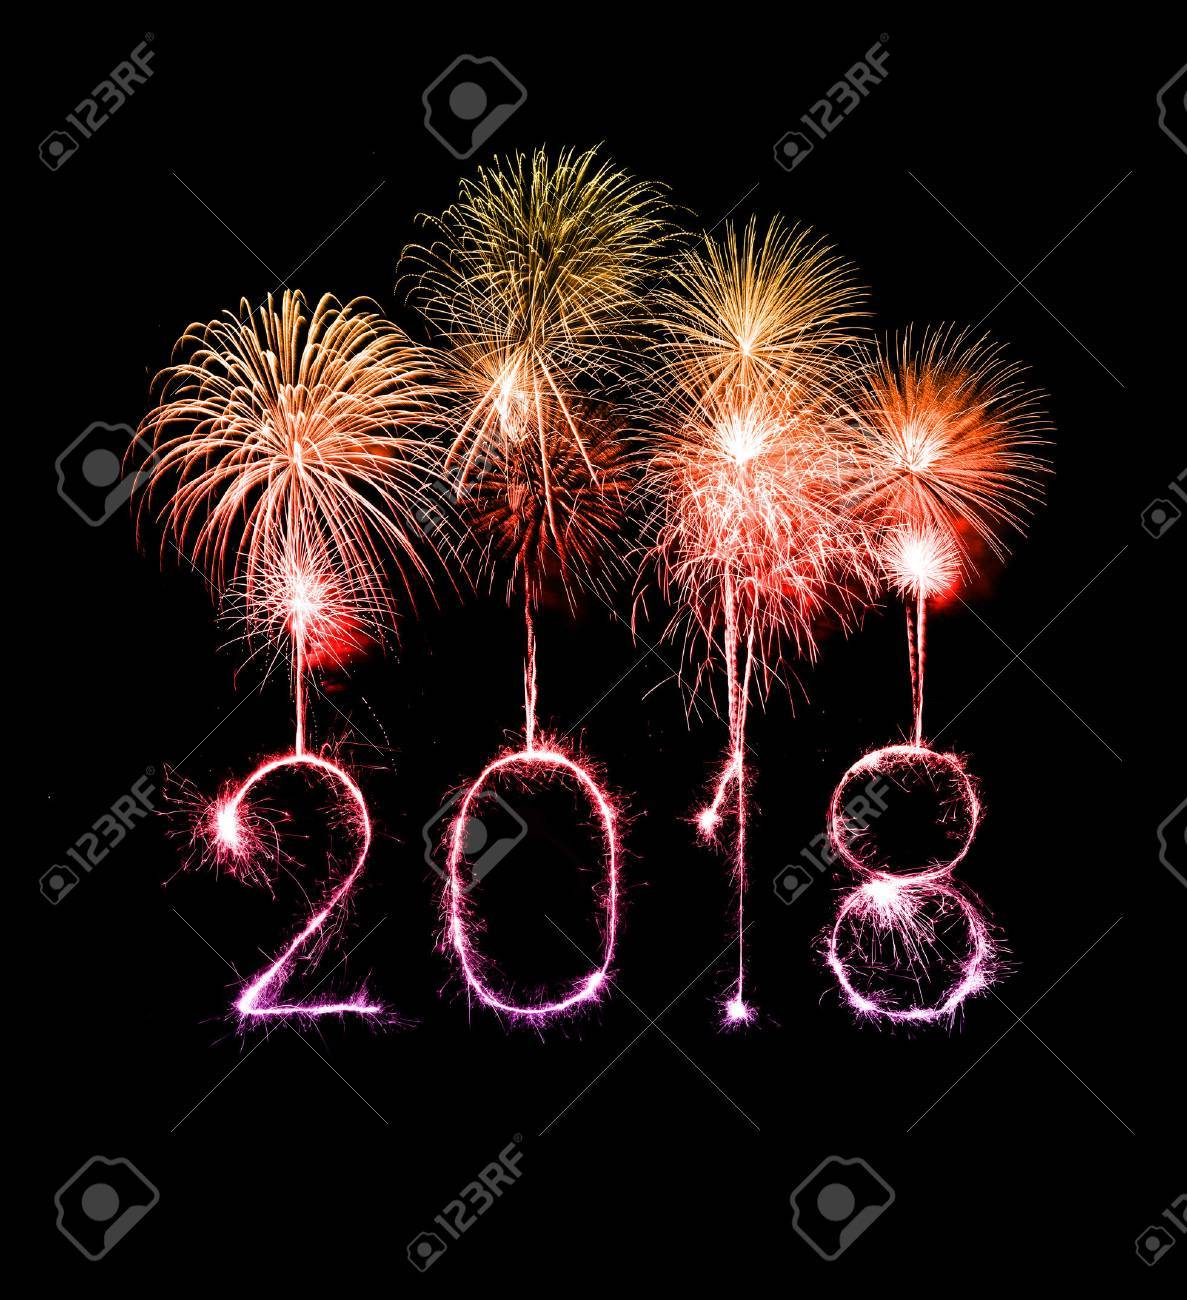 Happy new year 2018 written with Sparkle firework at night - 87099033